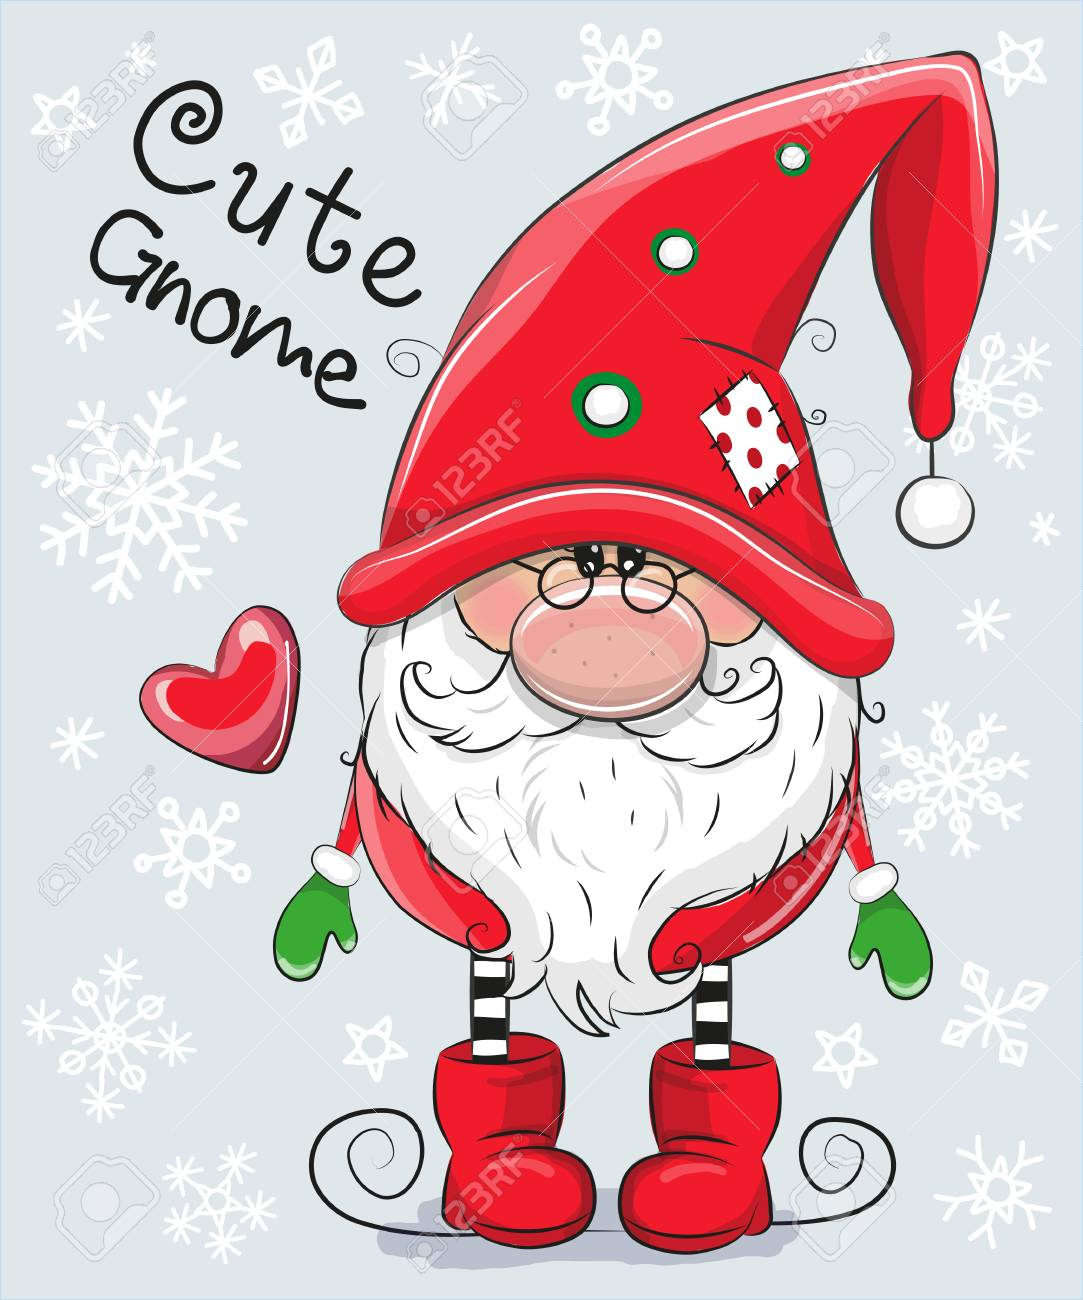 Christmas Images Free Cartoon.Greeting Christmas Card Cute Cartoon Gnome On A Blue Background